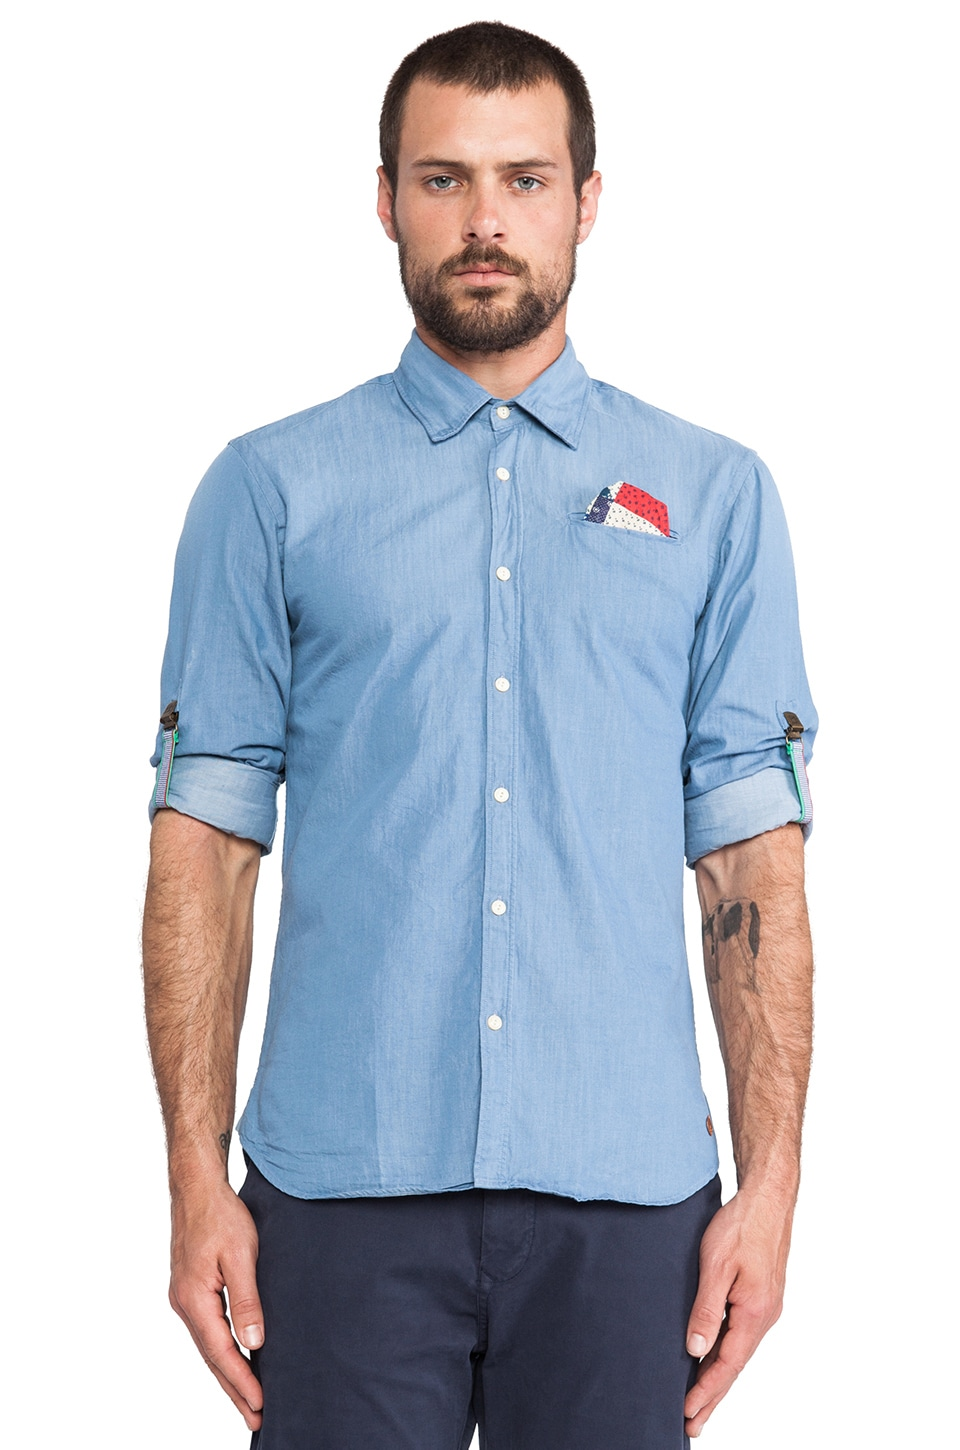 Scotch & Soda Crispy Poplin Shirt w/ Sleeve Rollup Suspenders in Blue